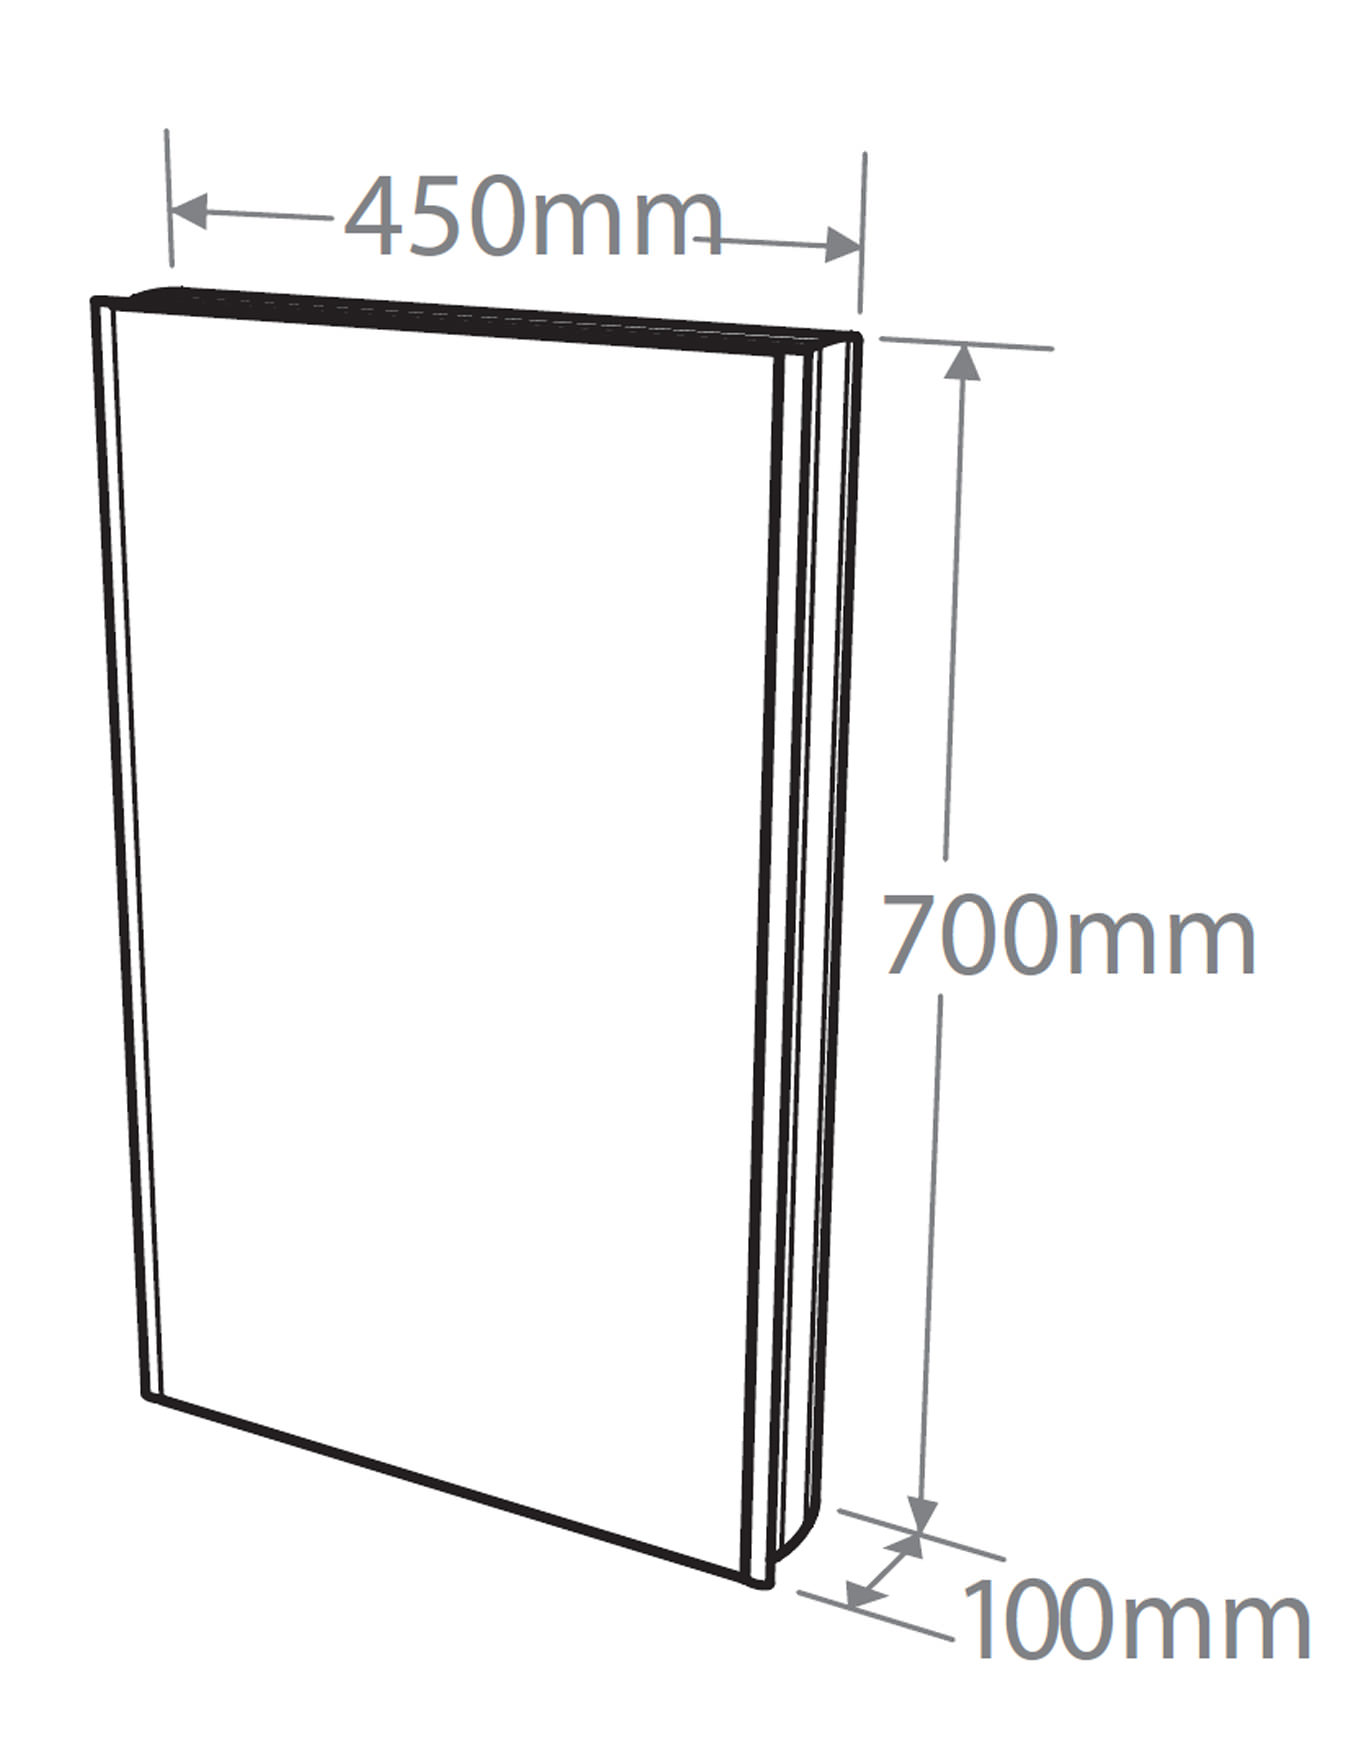 Roper Rhodes Ascension Limit Slimline Bathroom Cabinet 450mm ... for Slimline Bathroom Cabinets With Mirrors  186ref